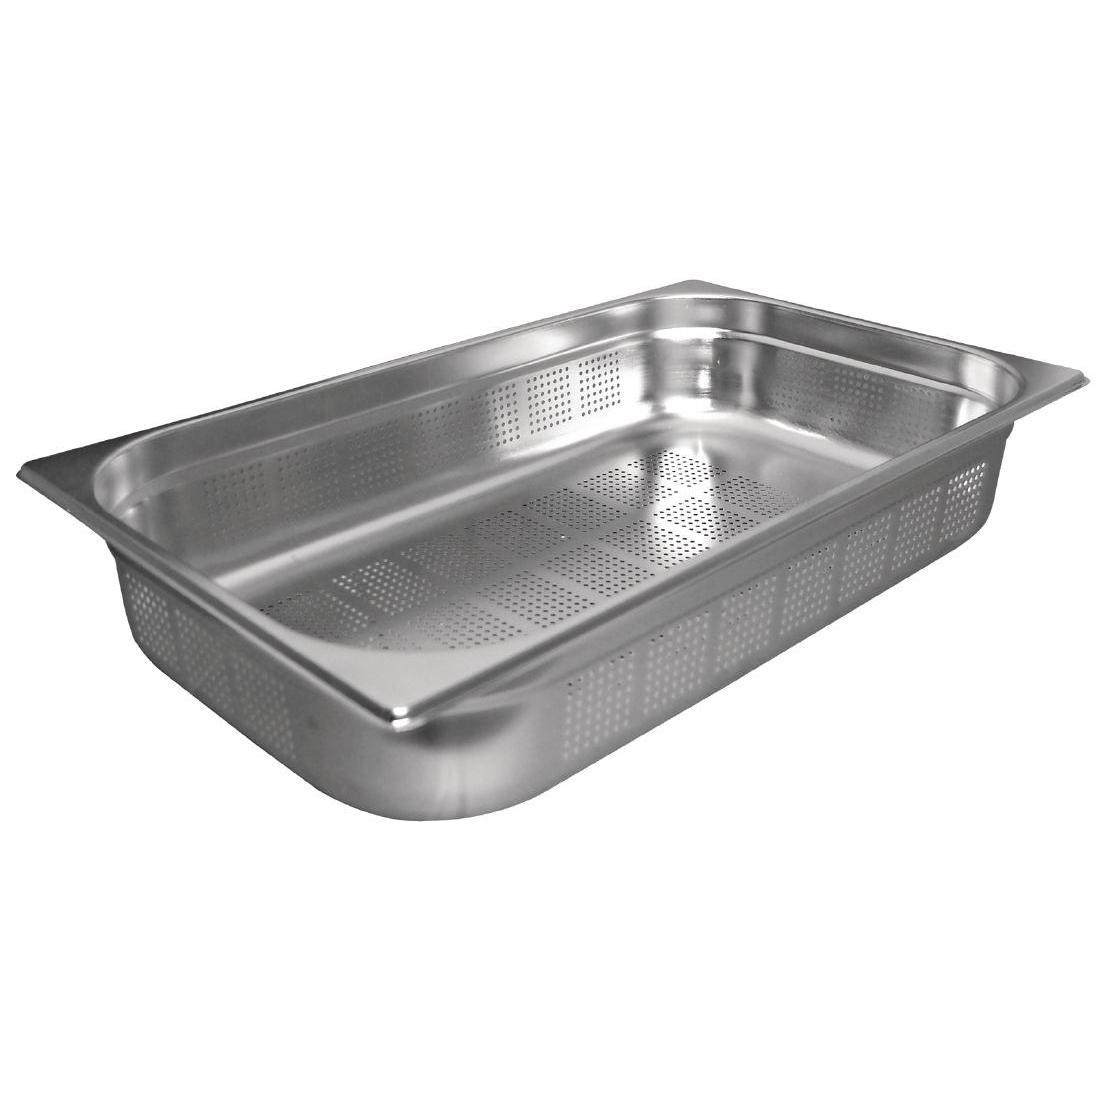 Vogue Stainless Steel Perforated 1/1 Gastronorm Pan 200mm - K843